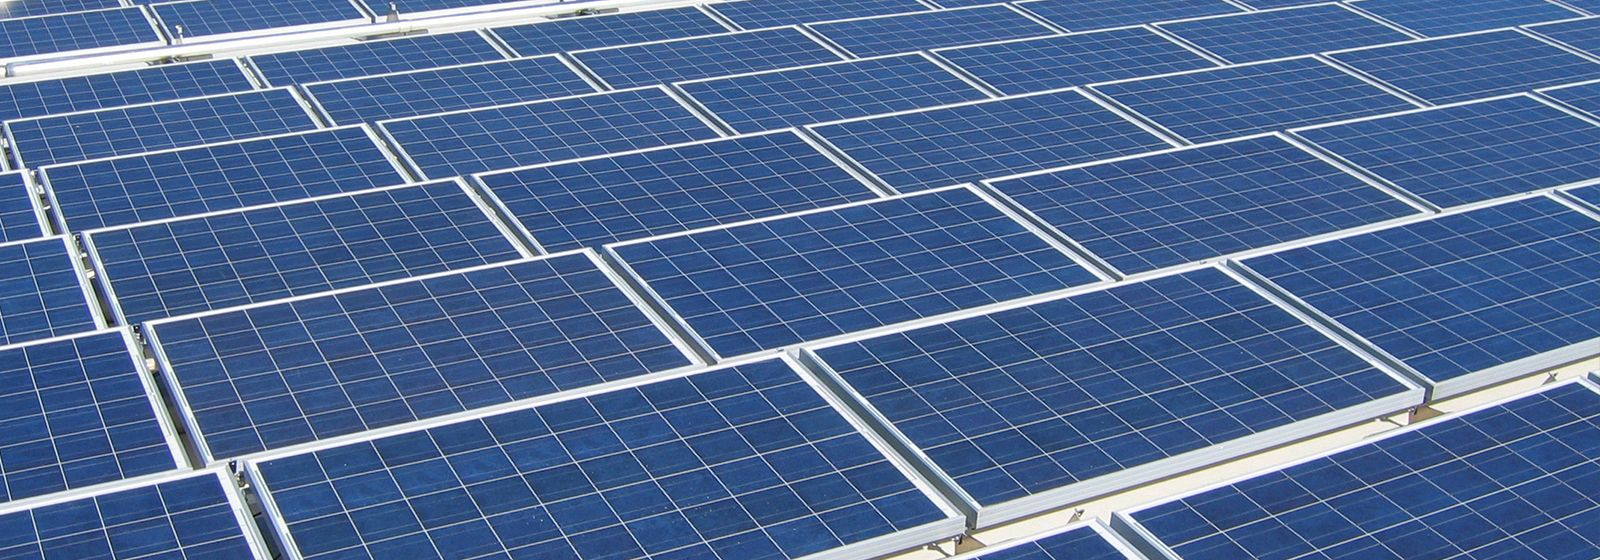 3 ways Duke Energy is upgrading the grid to enable renewables, lower carbon